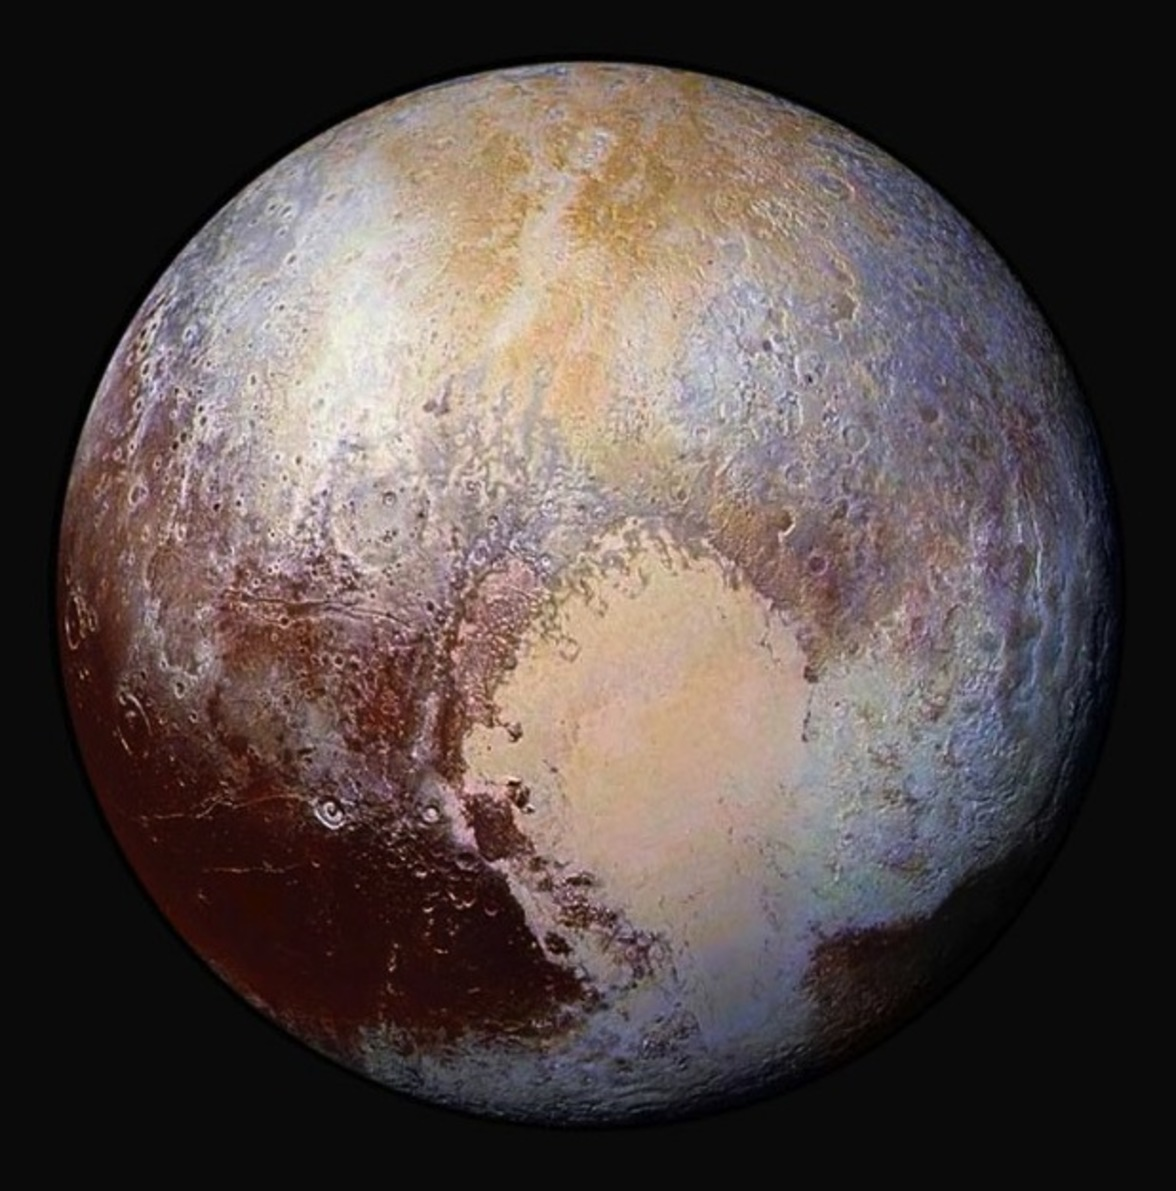 Pluto's Sputnik Planum captured hearts here on Earth. - Image Credit: NASA/Johns Hopkins University Applied Physics Laboratory/Southwest Research Institute,  CC BY